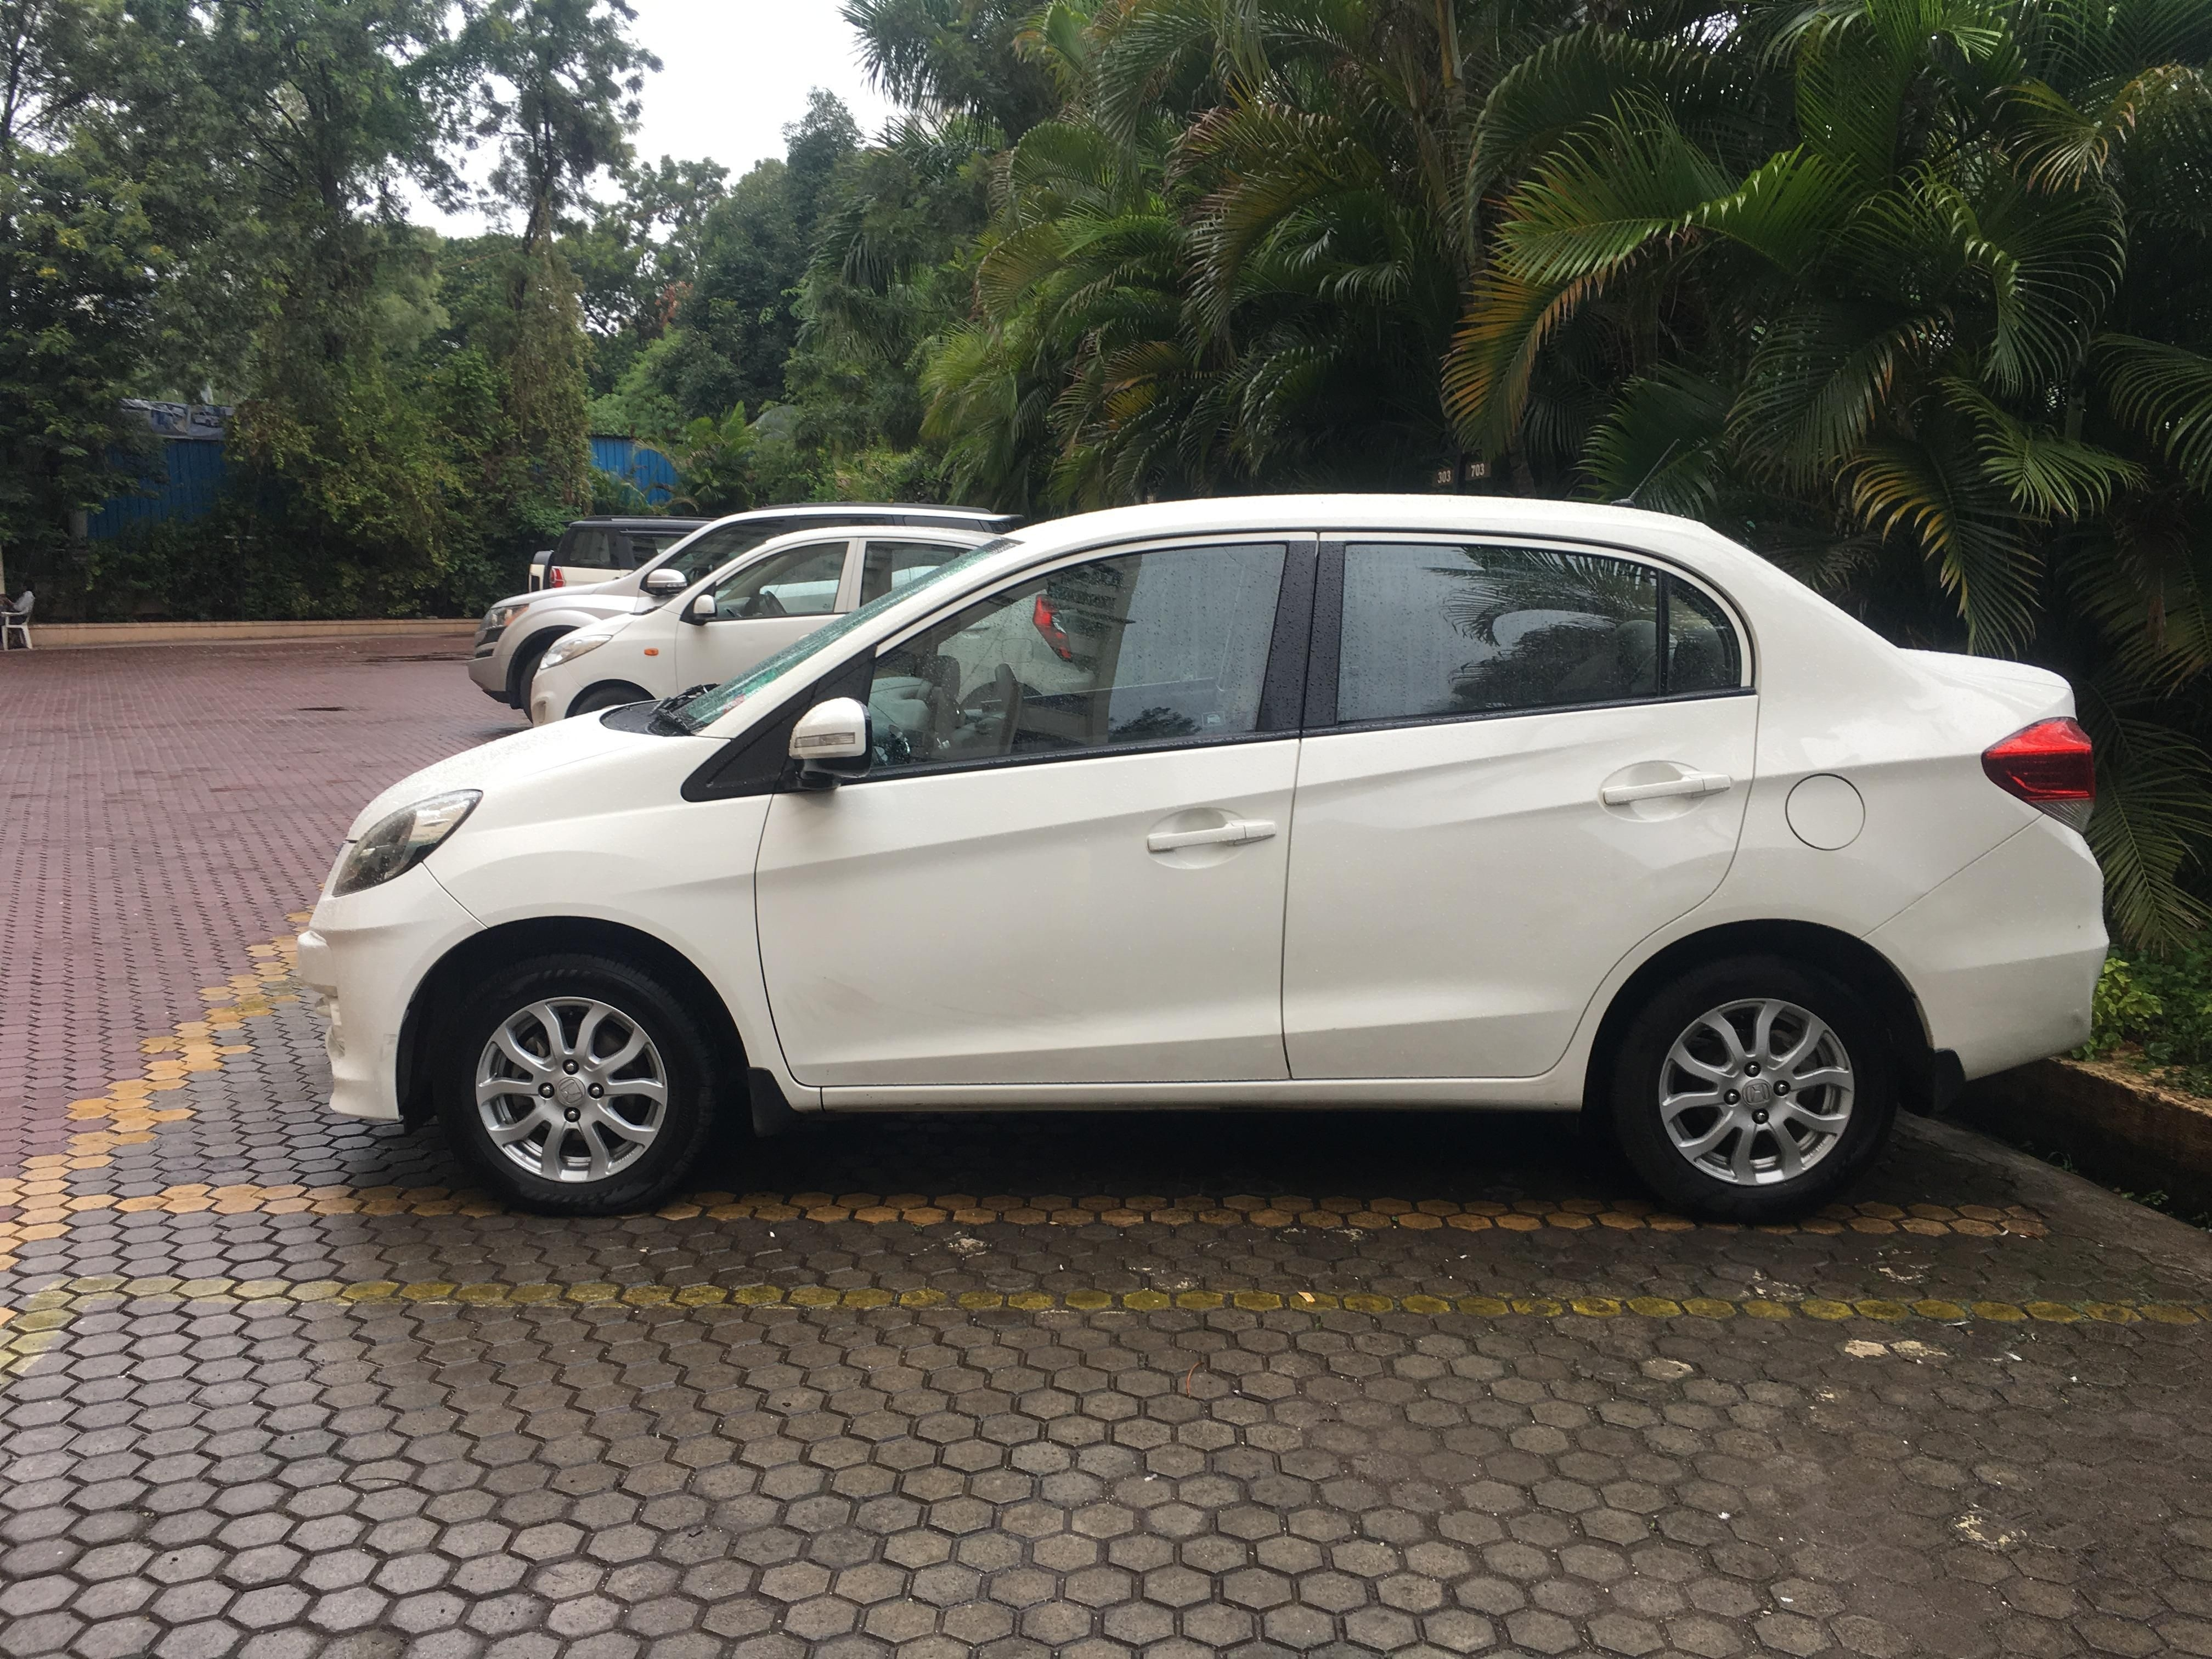 Honda Amaze Car For Sale In Pune Id 1416282564 Droom